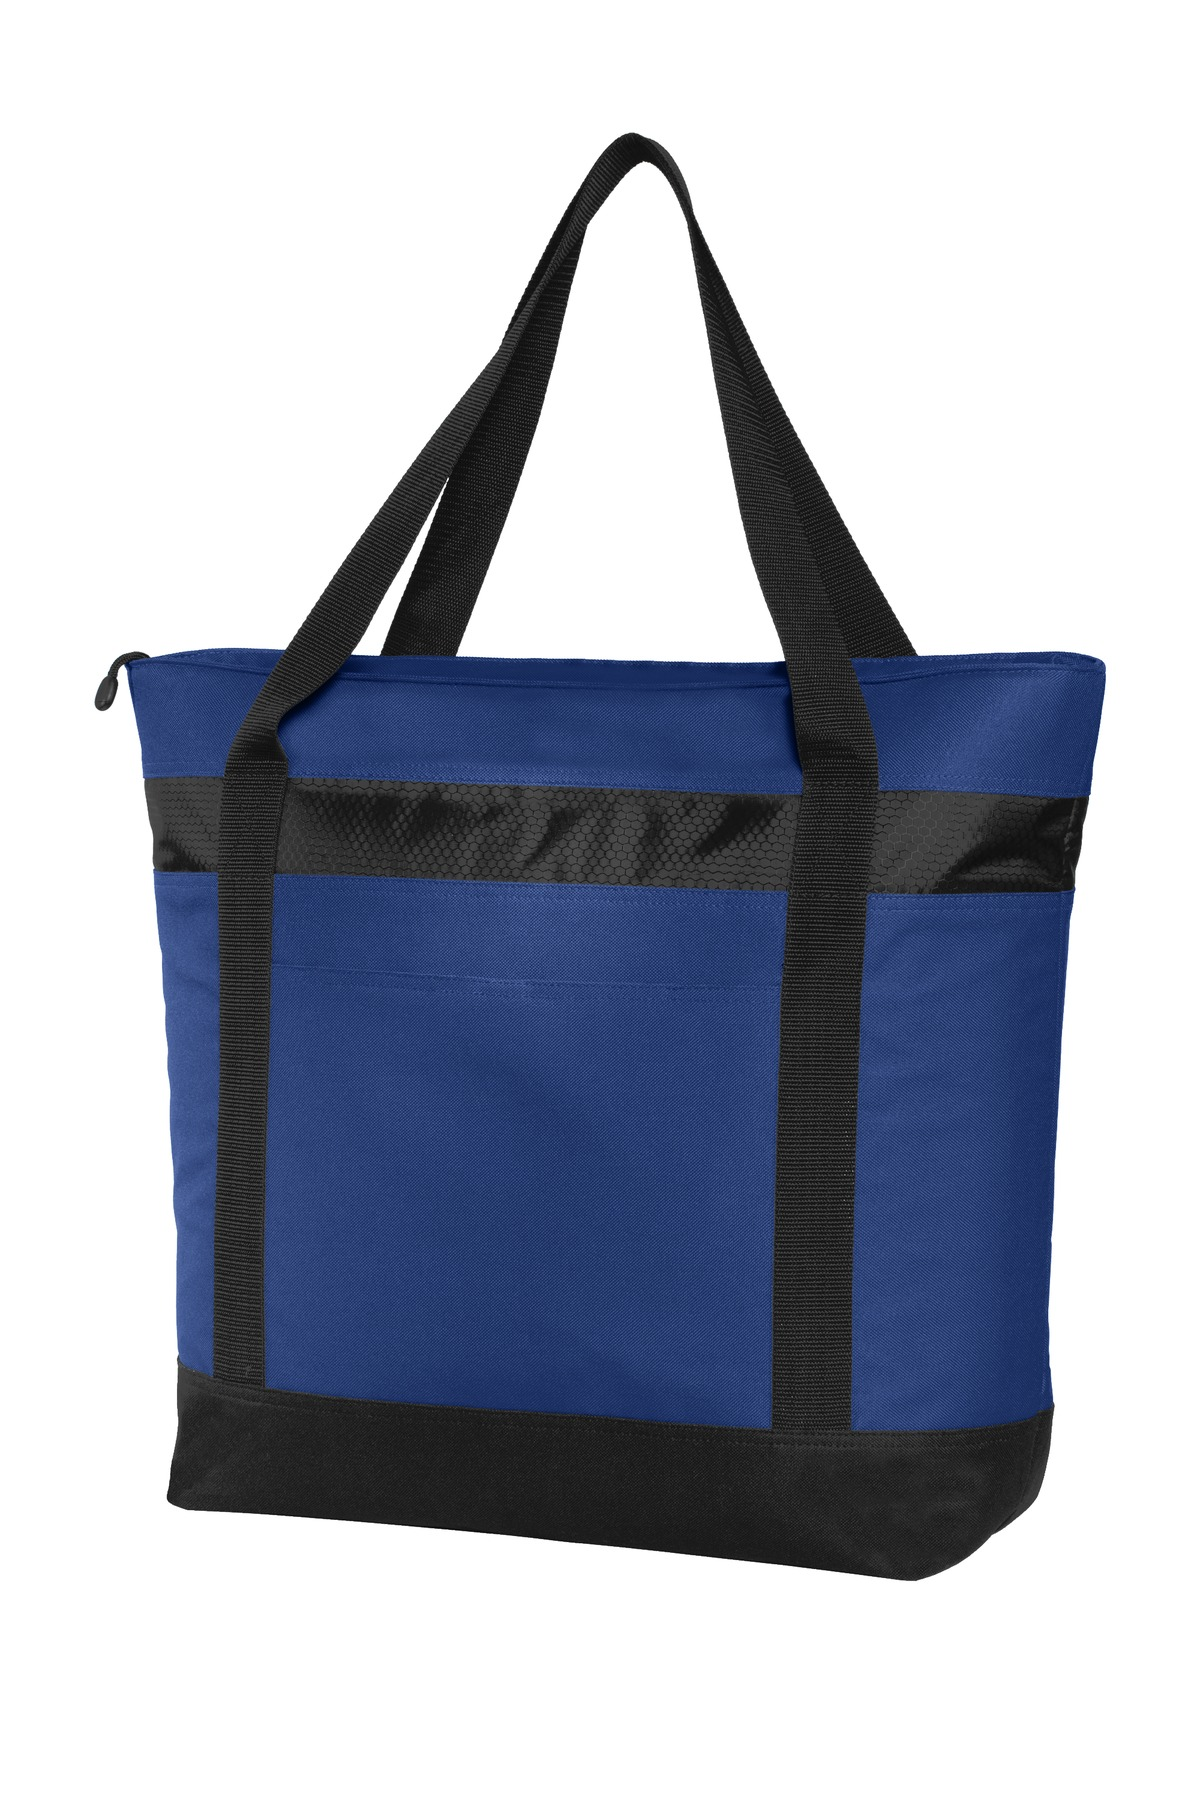 Port Authority ®  Large Tote Cooler. BG527 - True Royal/ Black